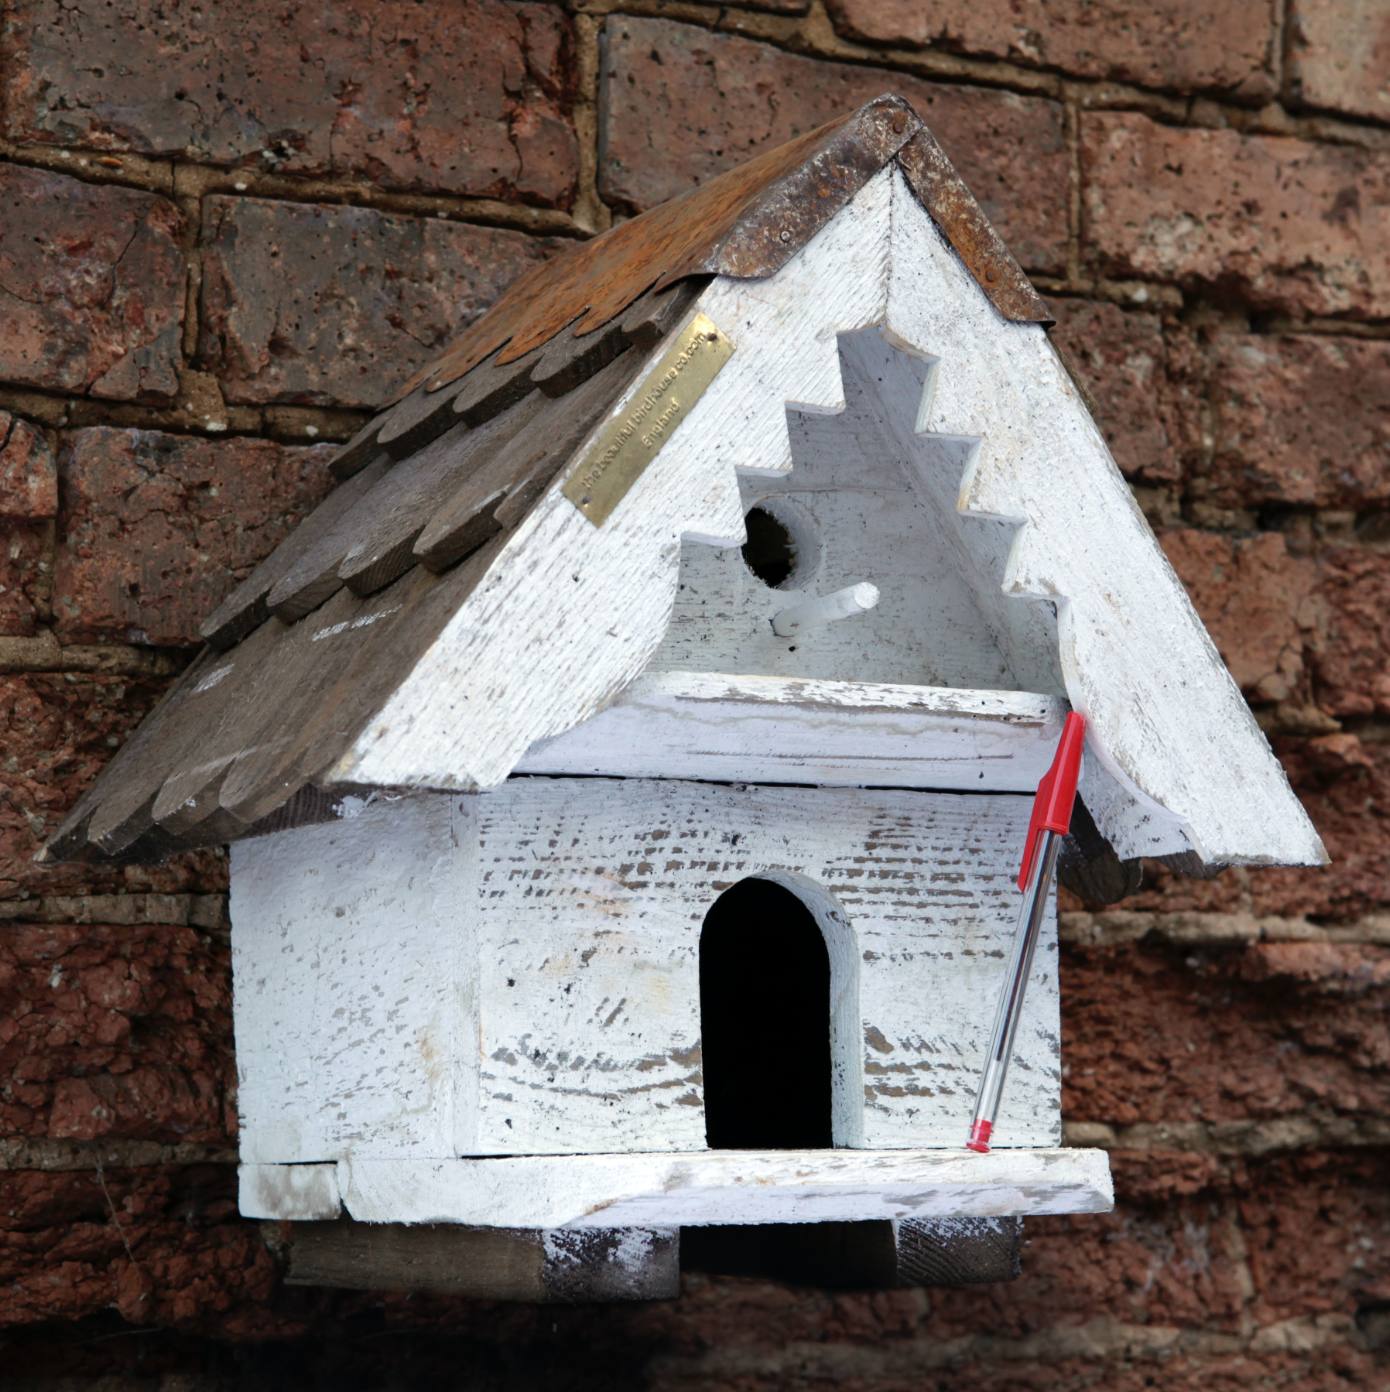 One Tier Birdhouse - Small Hole